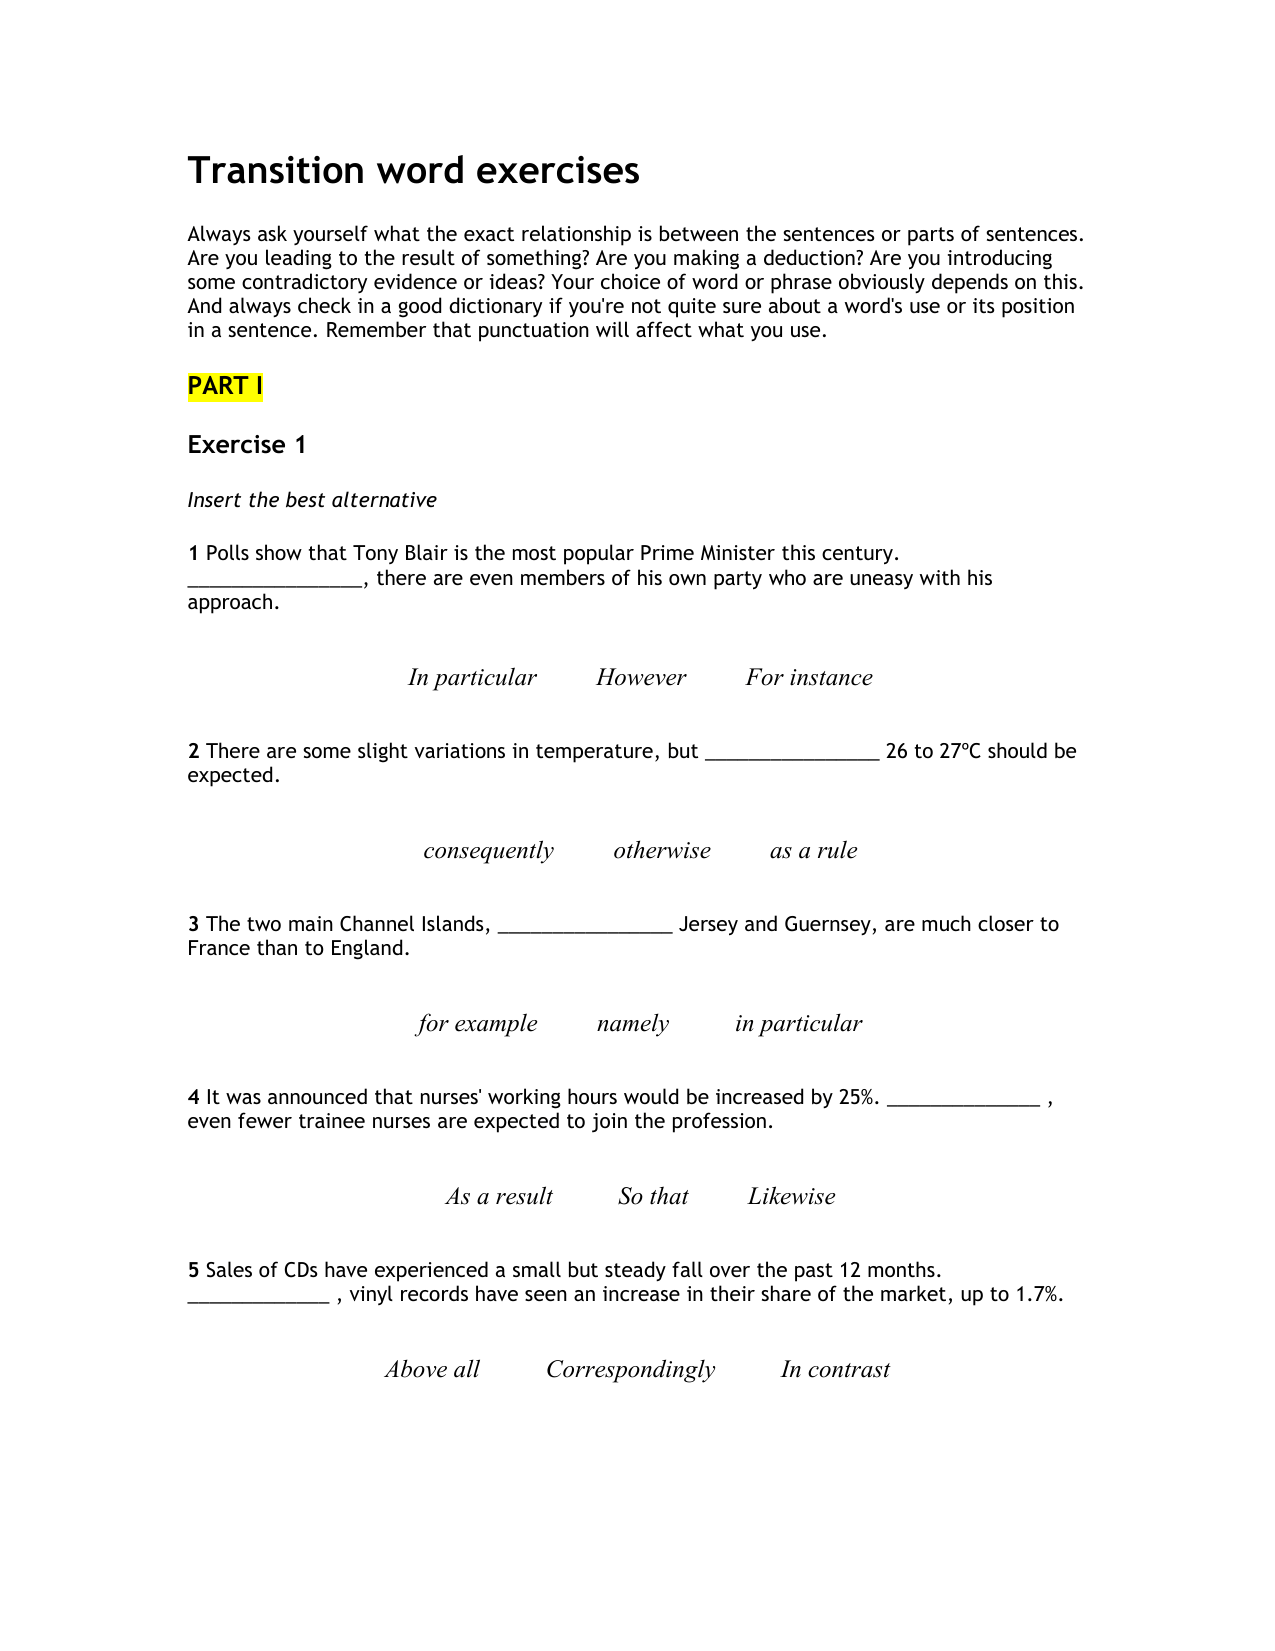 Transition Word Exercises 1c